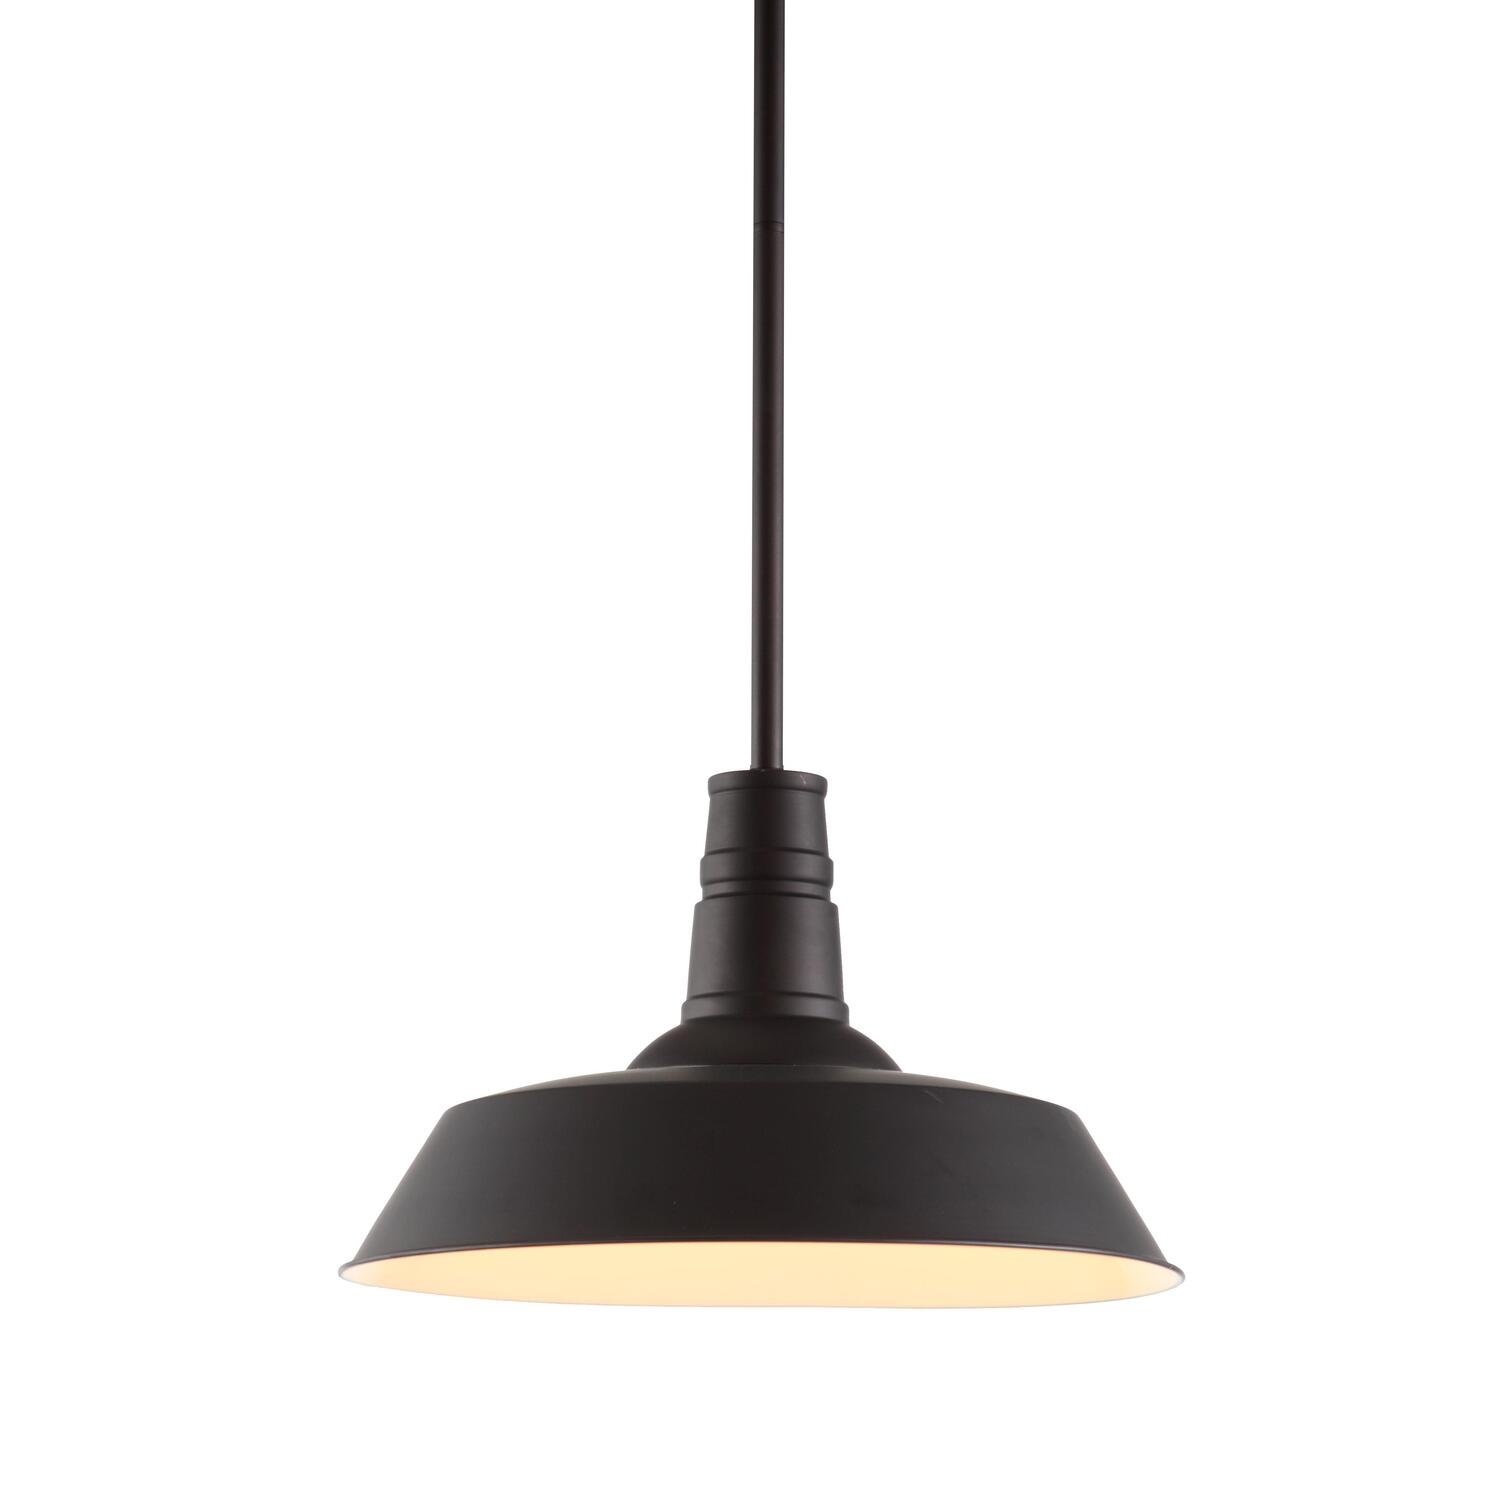 Zuo Modern TIN CEILING LAMP by OJ Commerce 98245 - $270.00